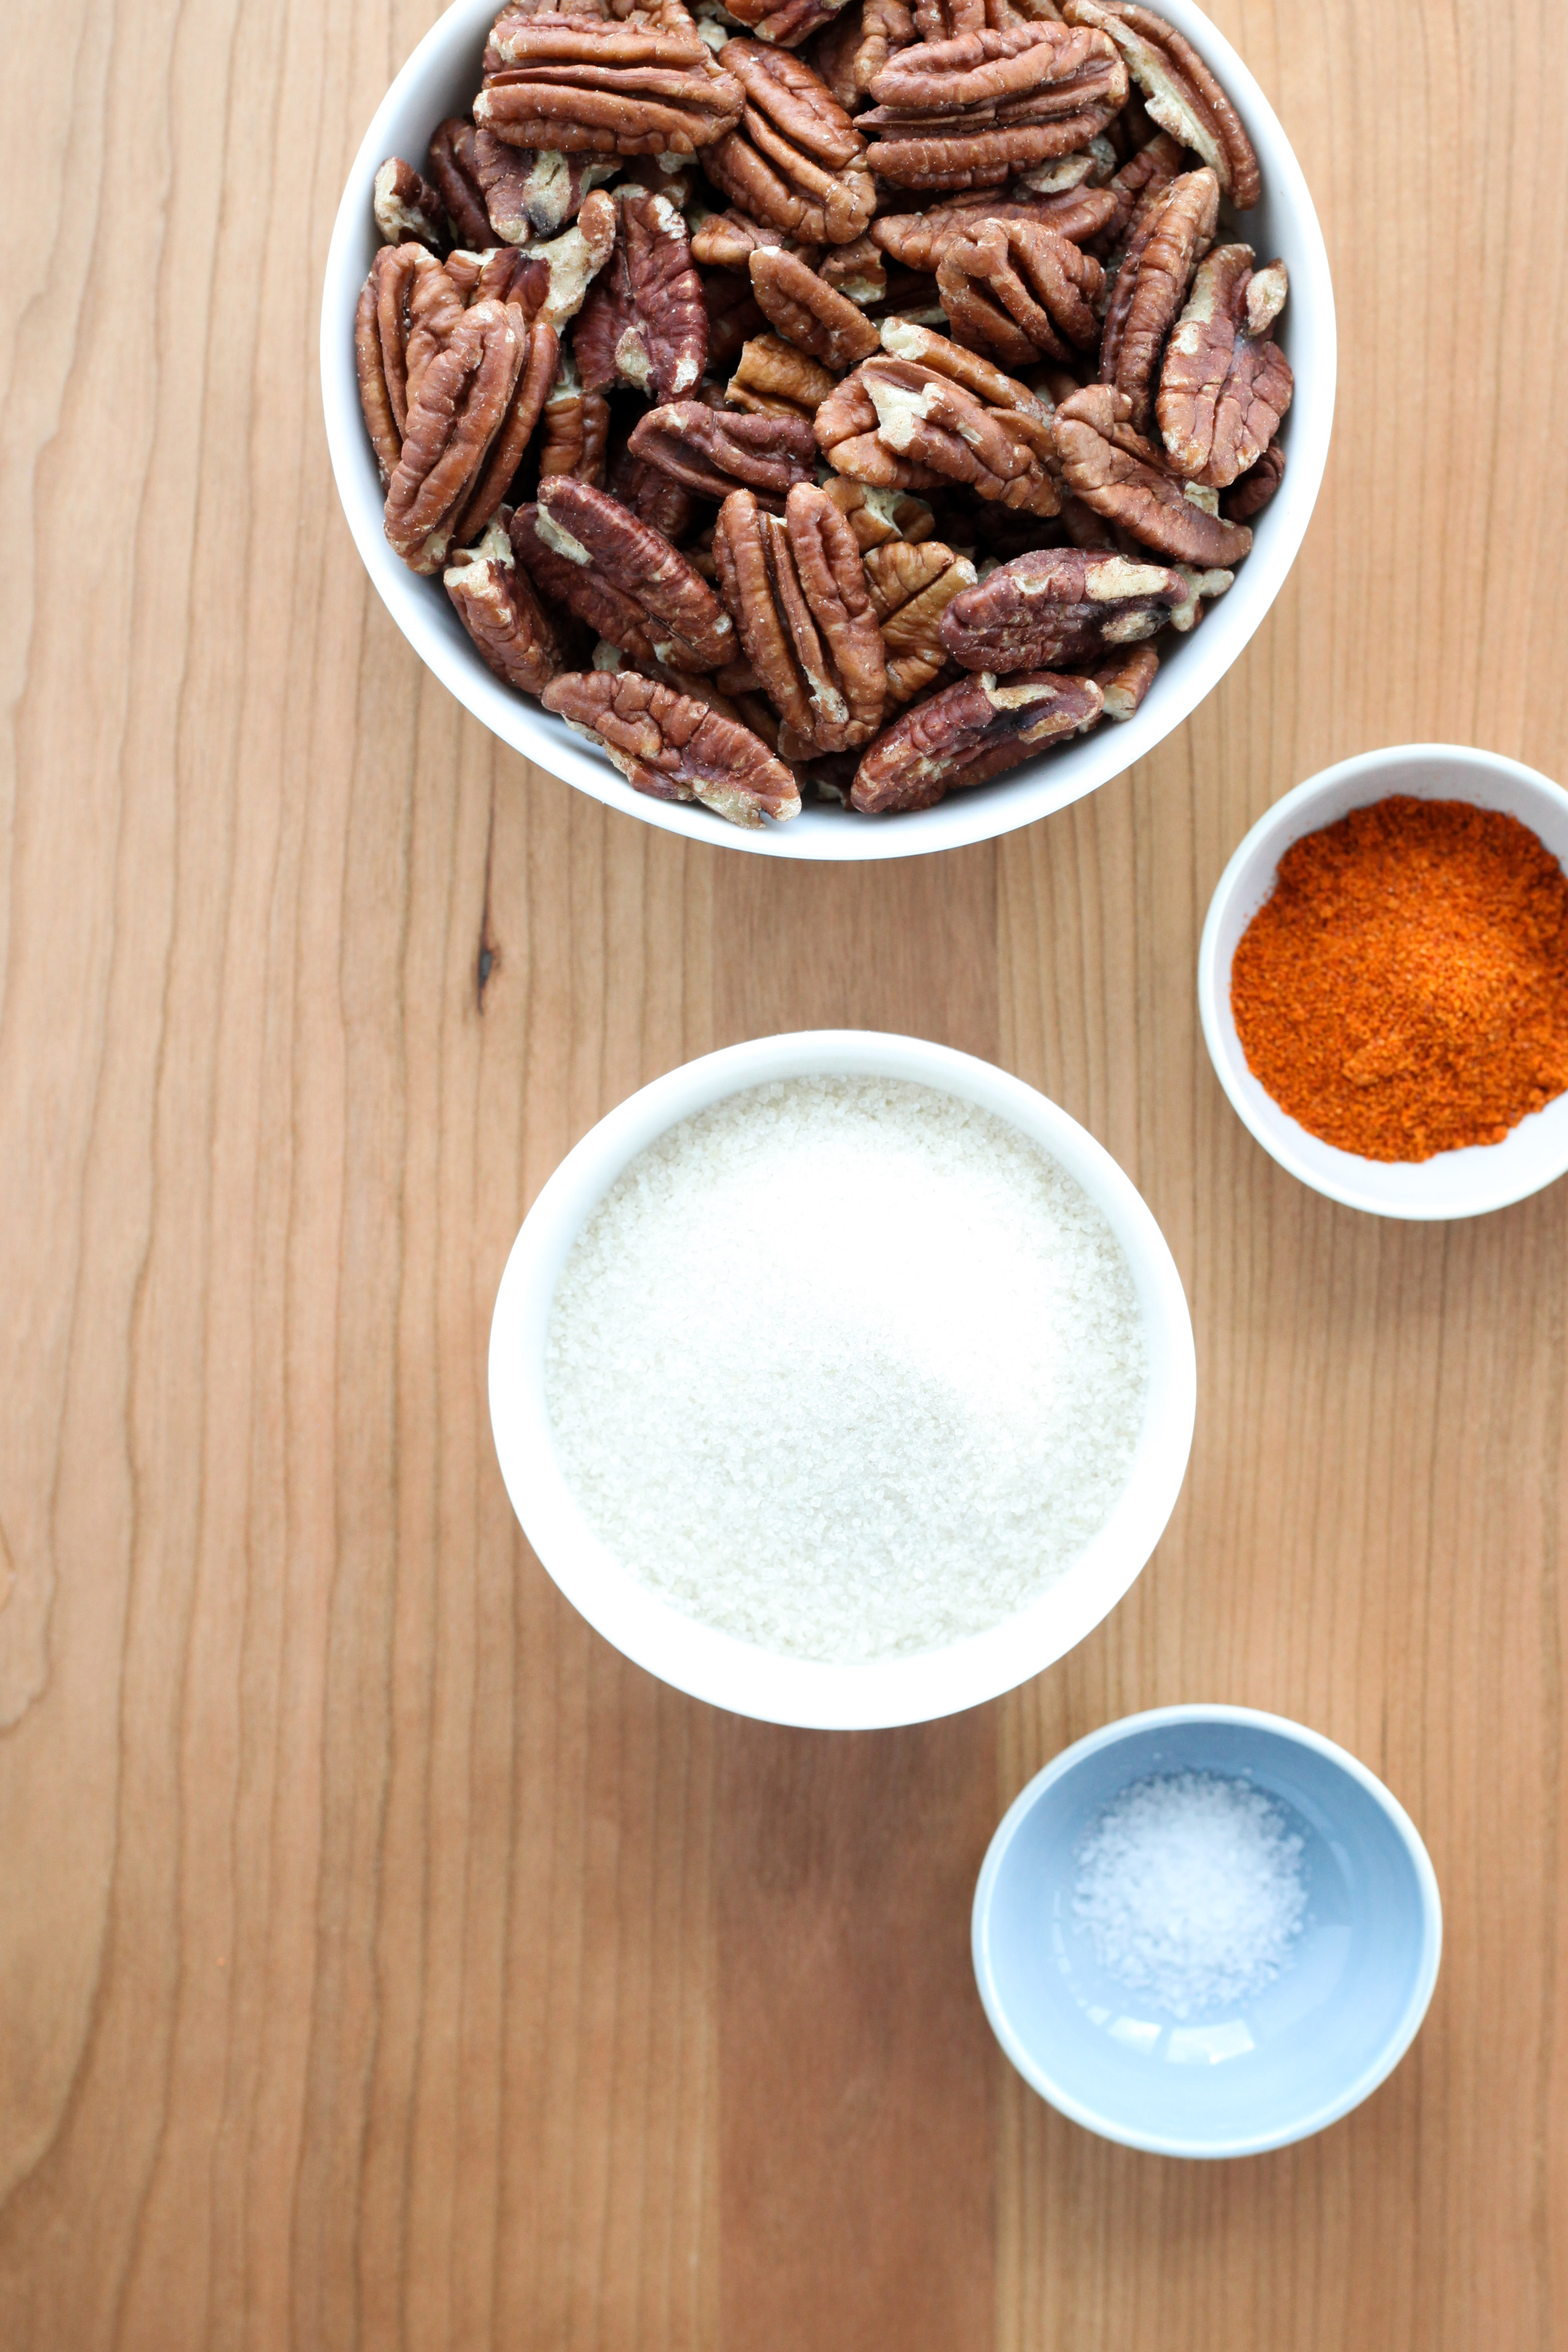 Spicy pecans ingredients